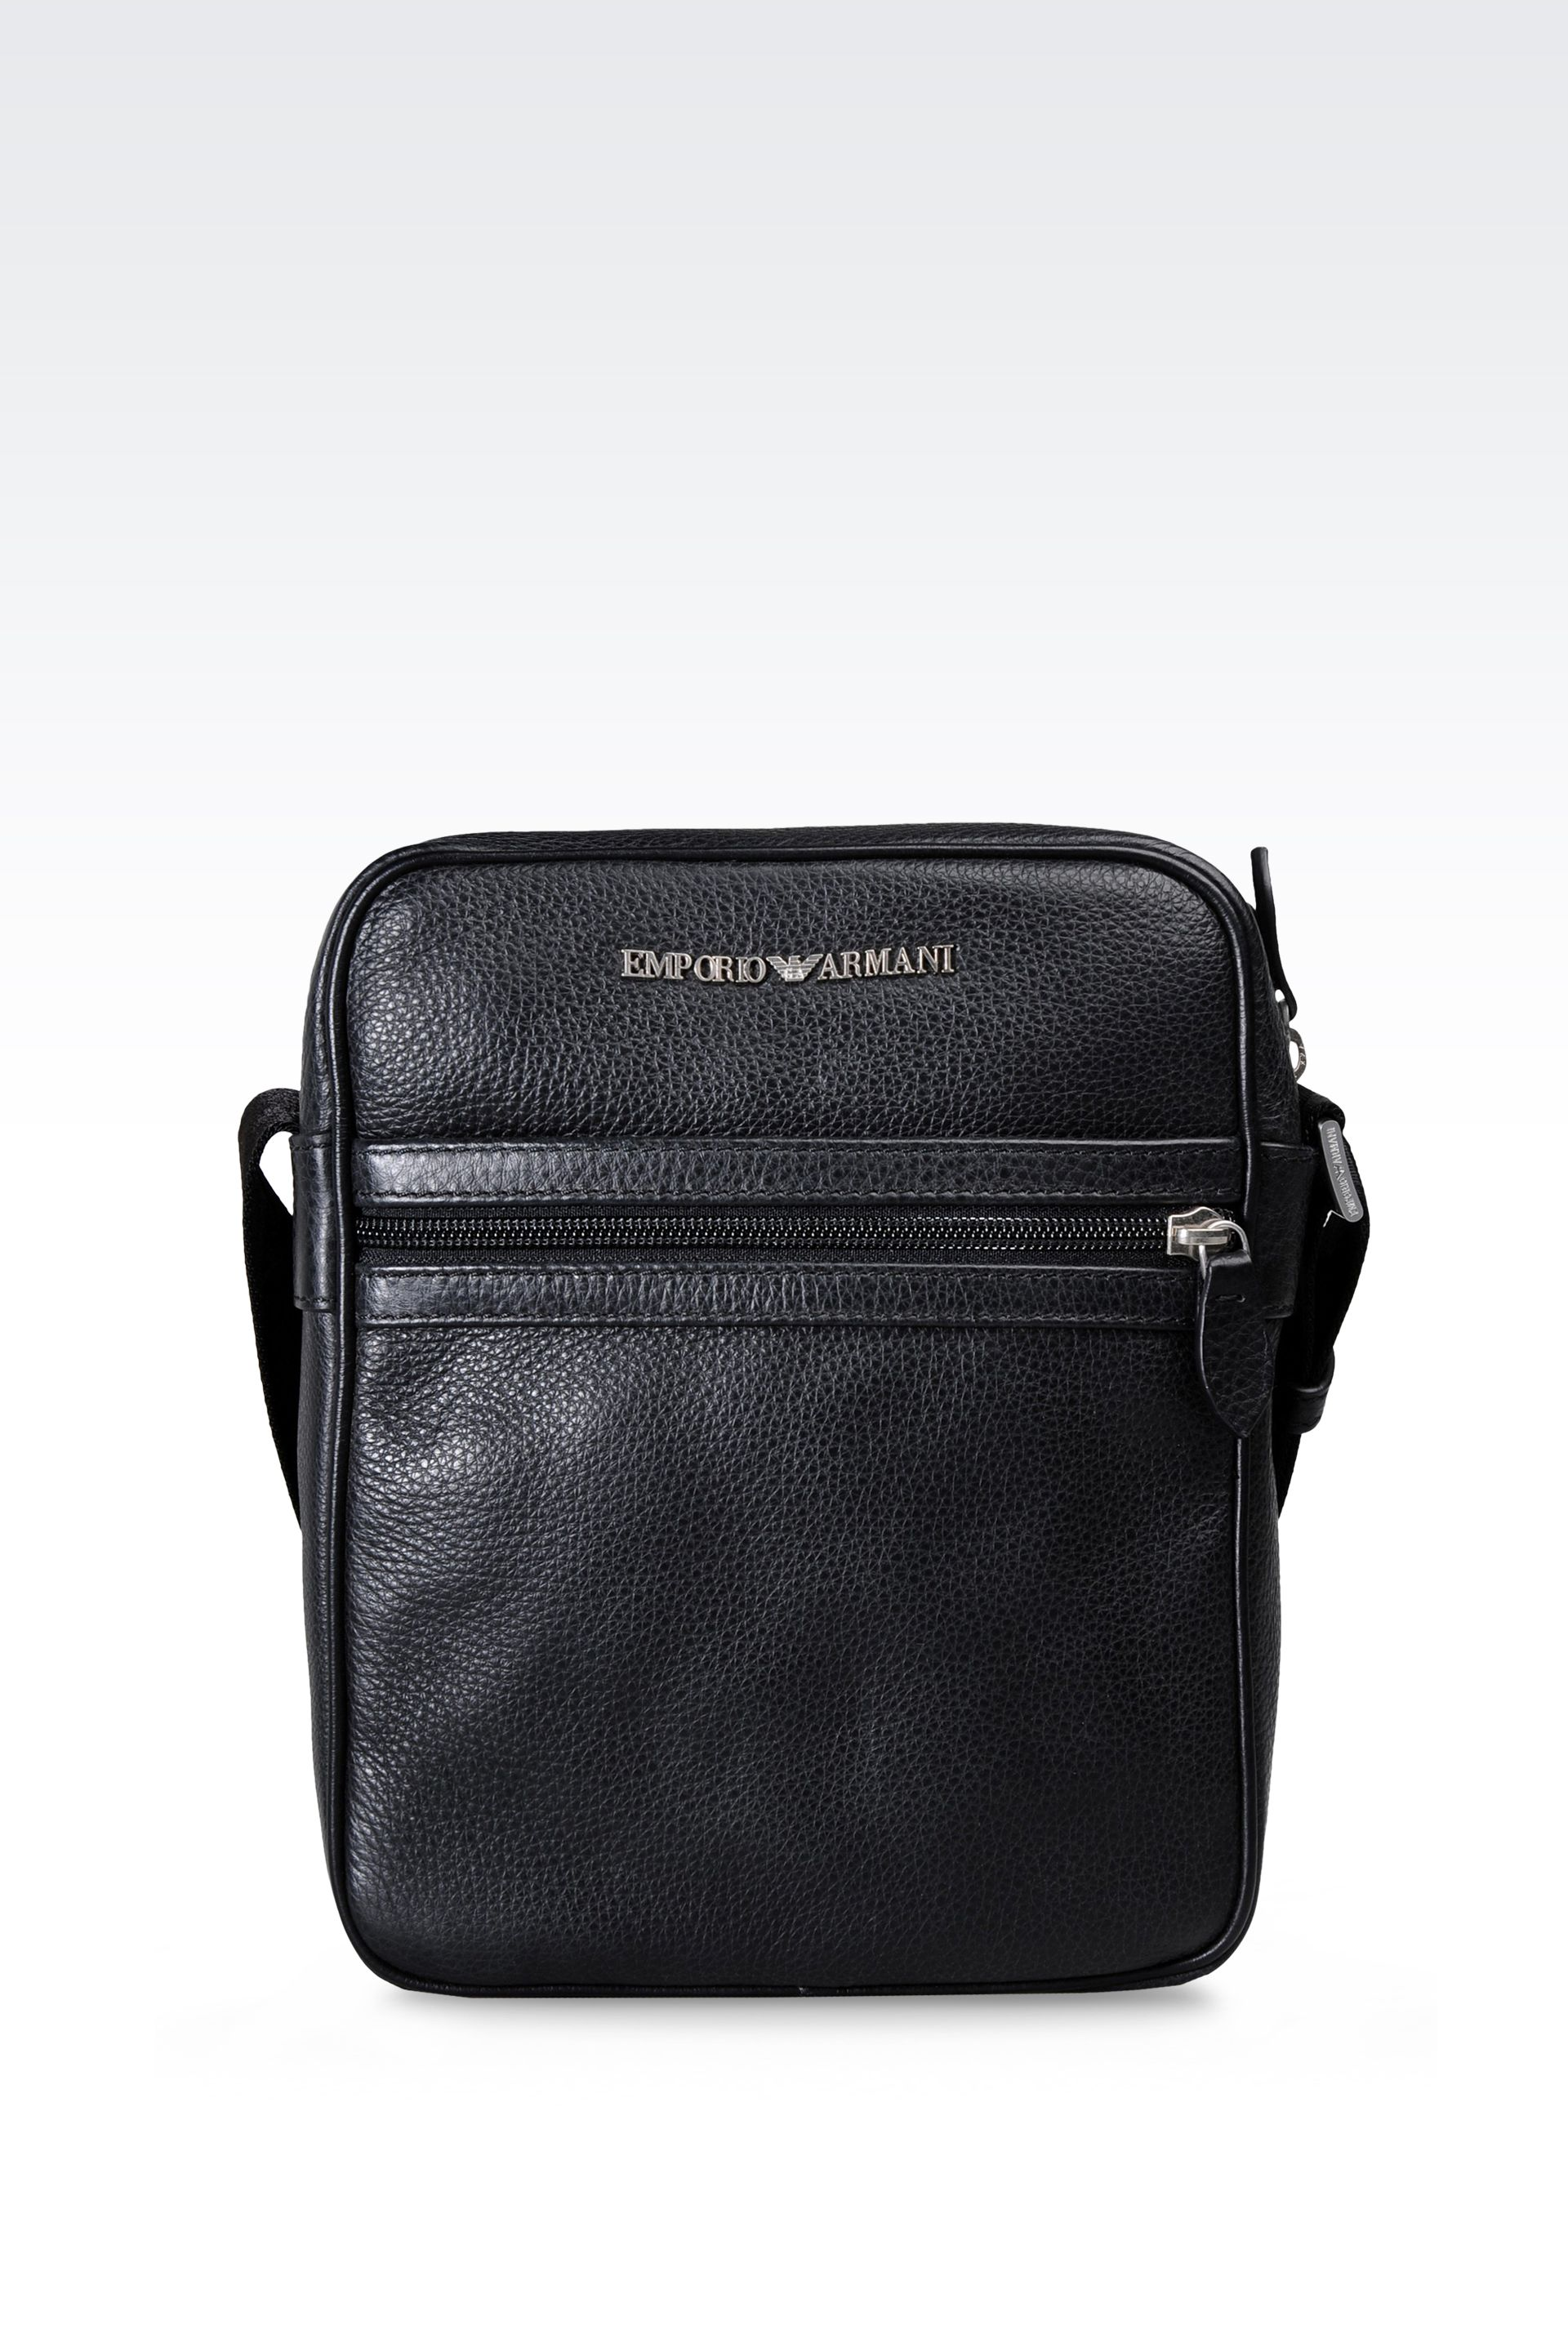 104f5a86fed6 Lyst - Emporio Armani Small Leather Shoulder Bag in Black for Men